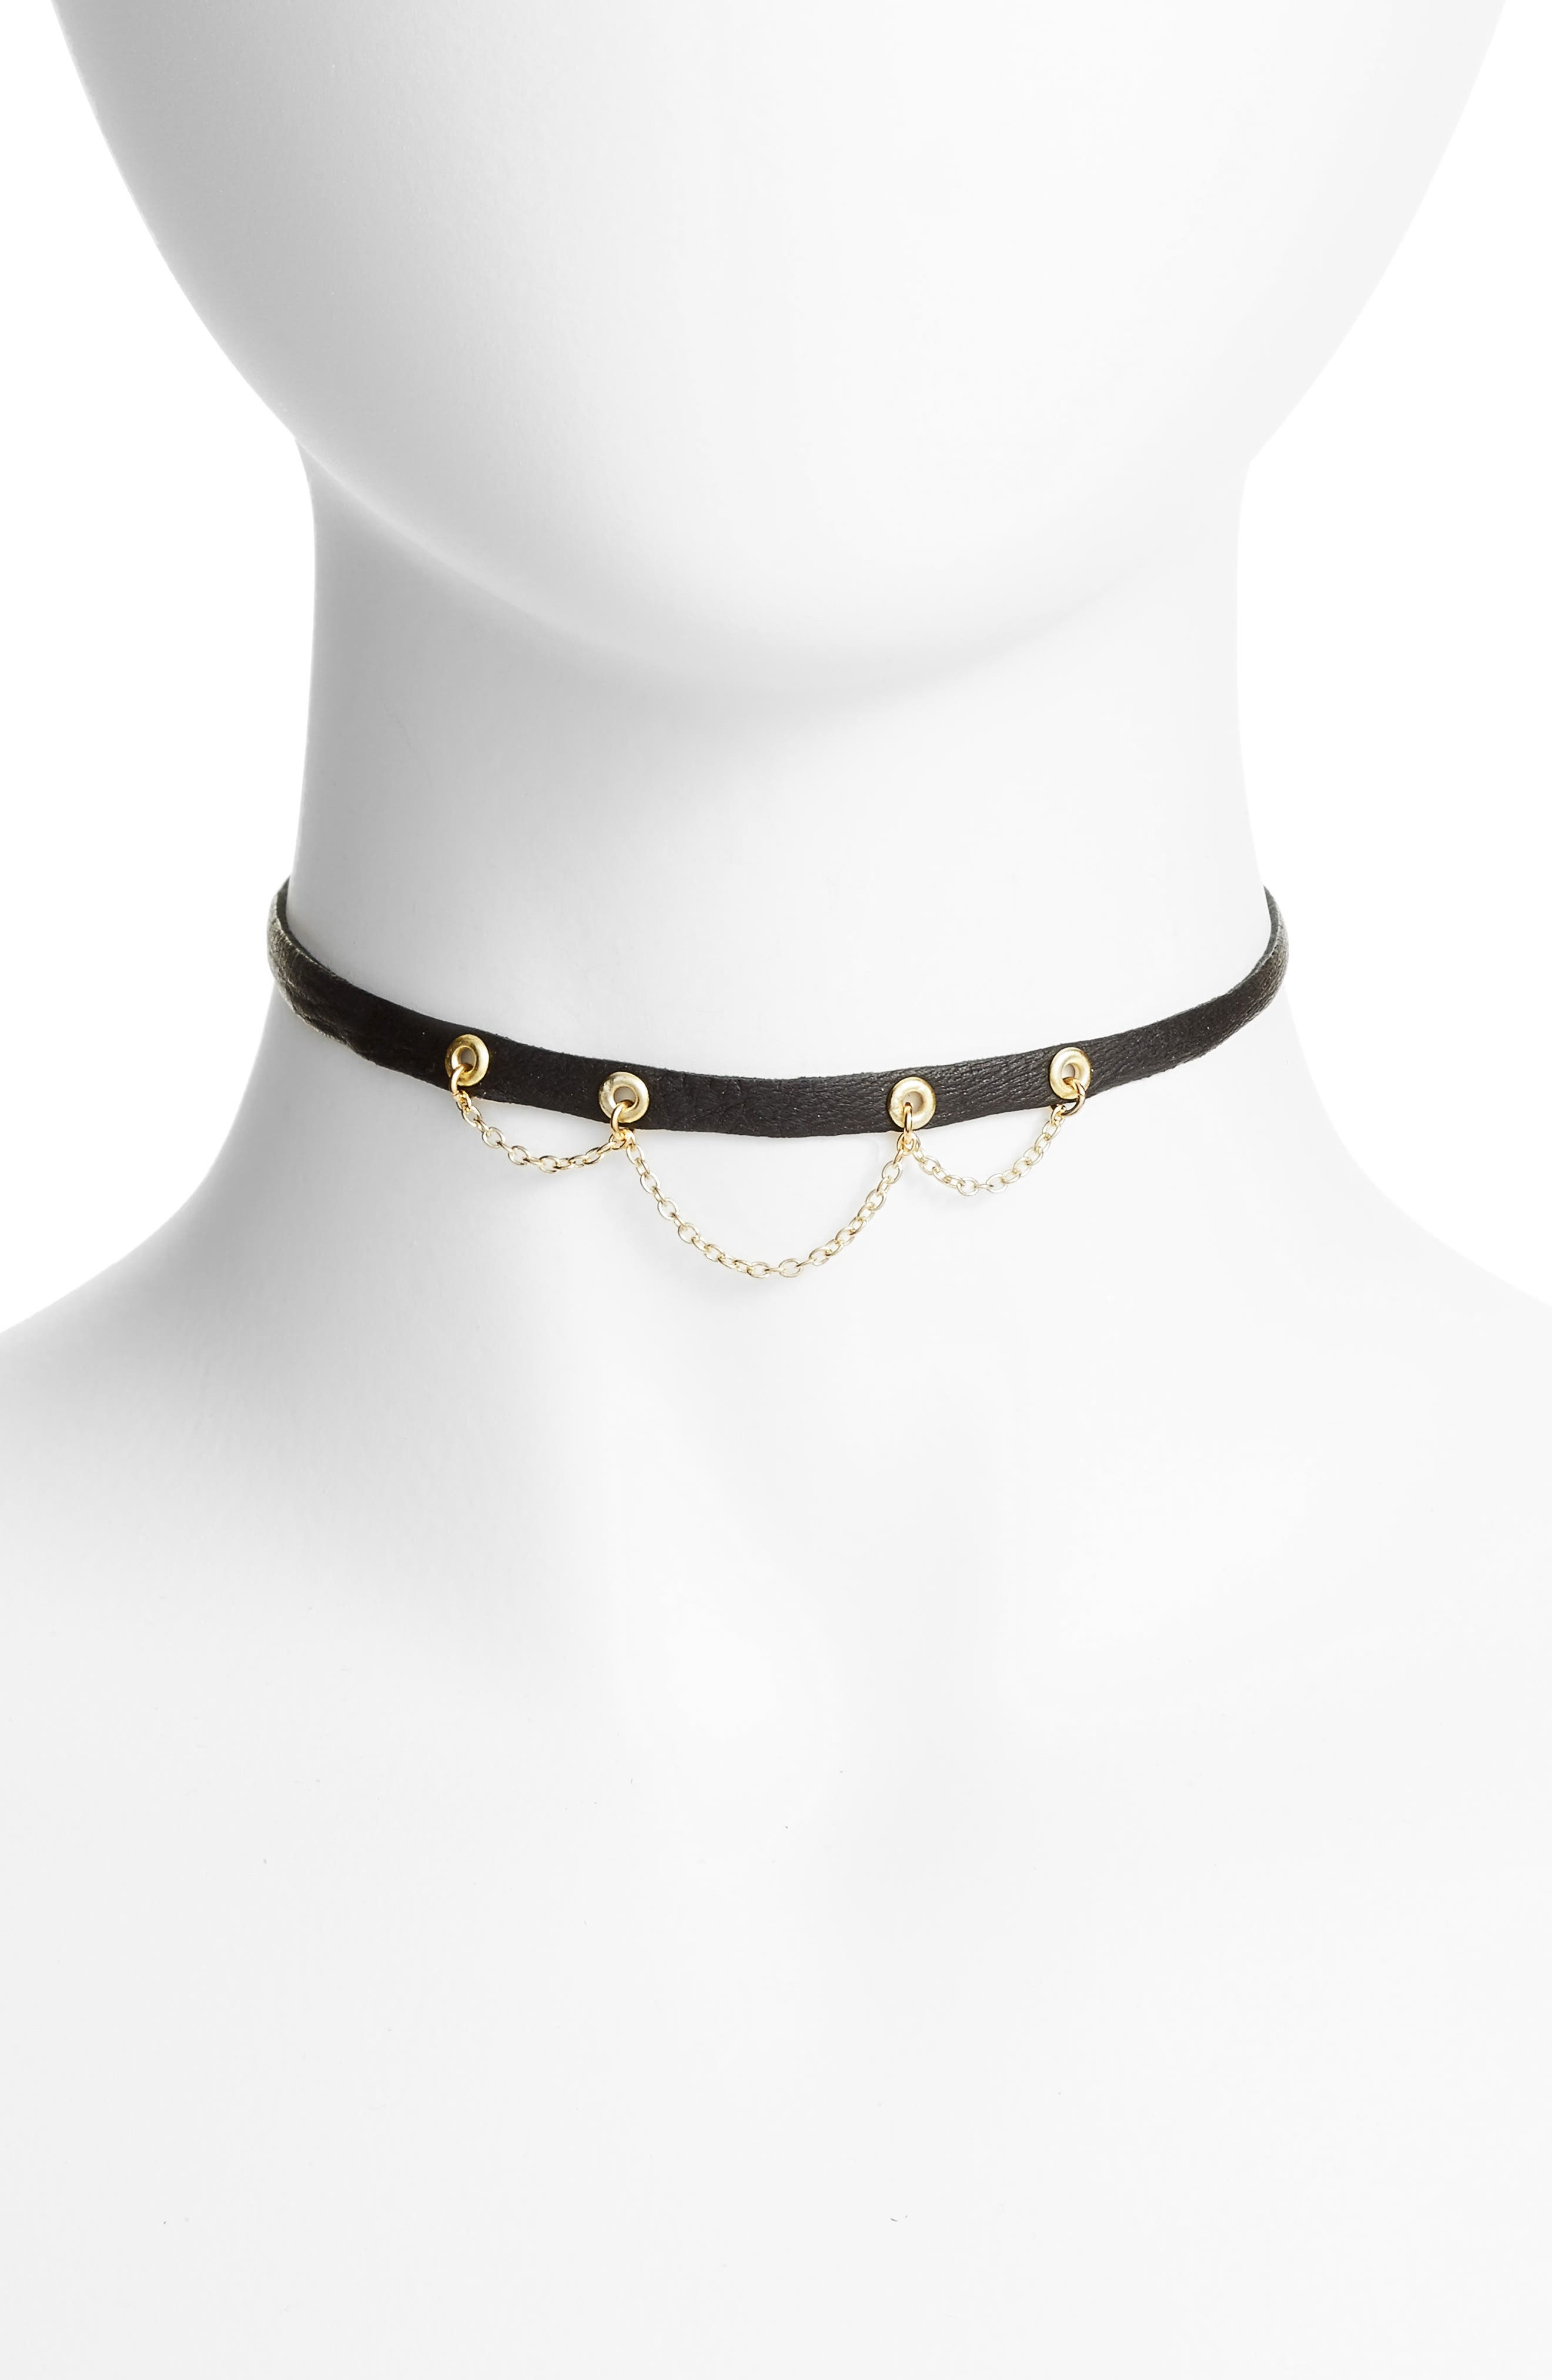 Leather & Chain Choker,                             Alternate thumbnail 2, color,                             001